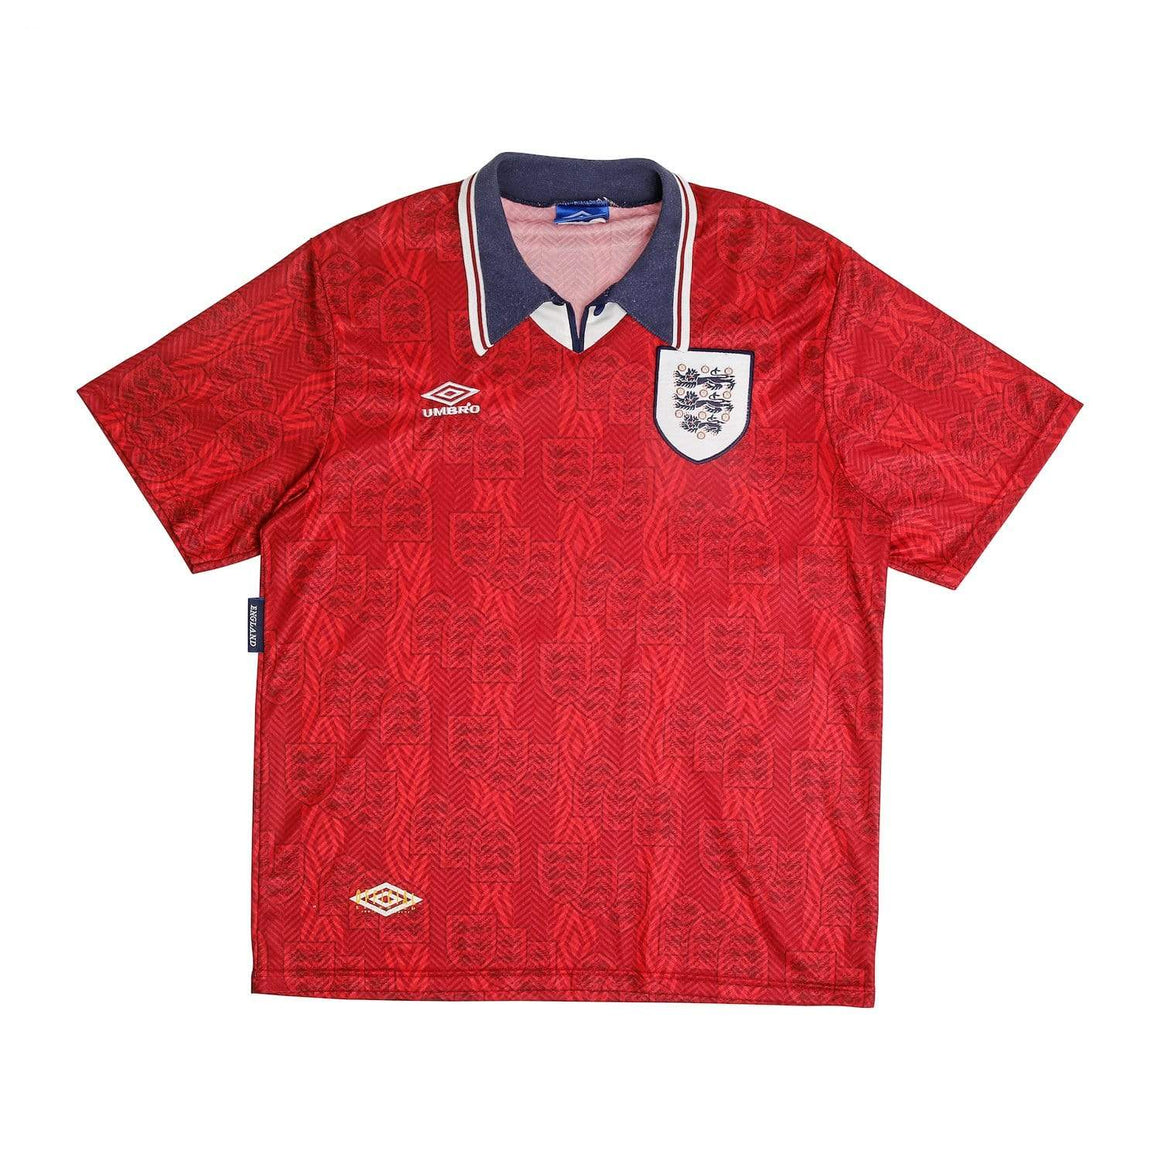 Football Shirt Collective 1994 England away football shirt XL Excellent